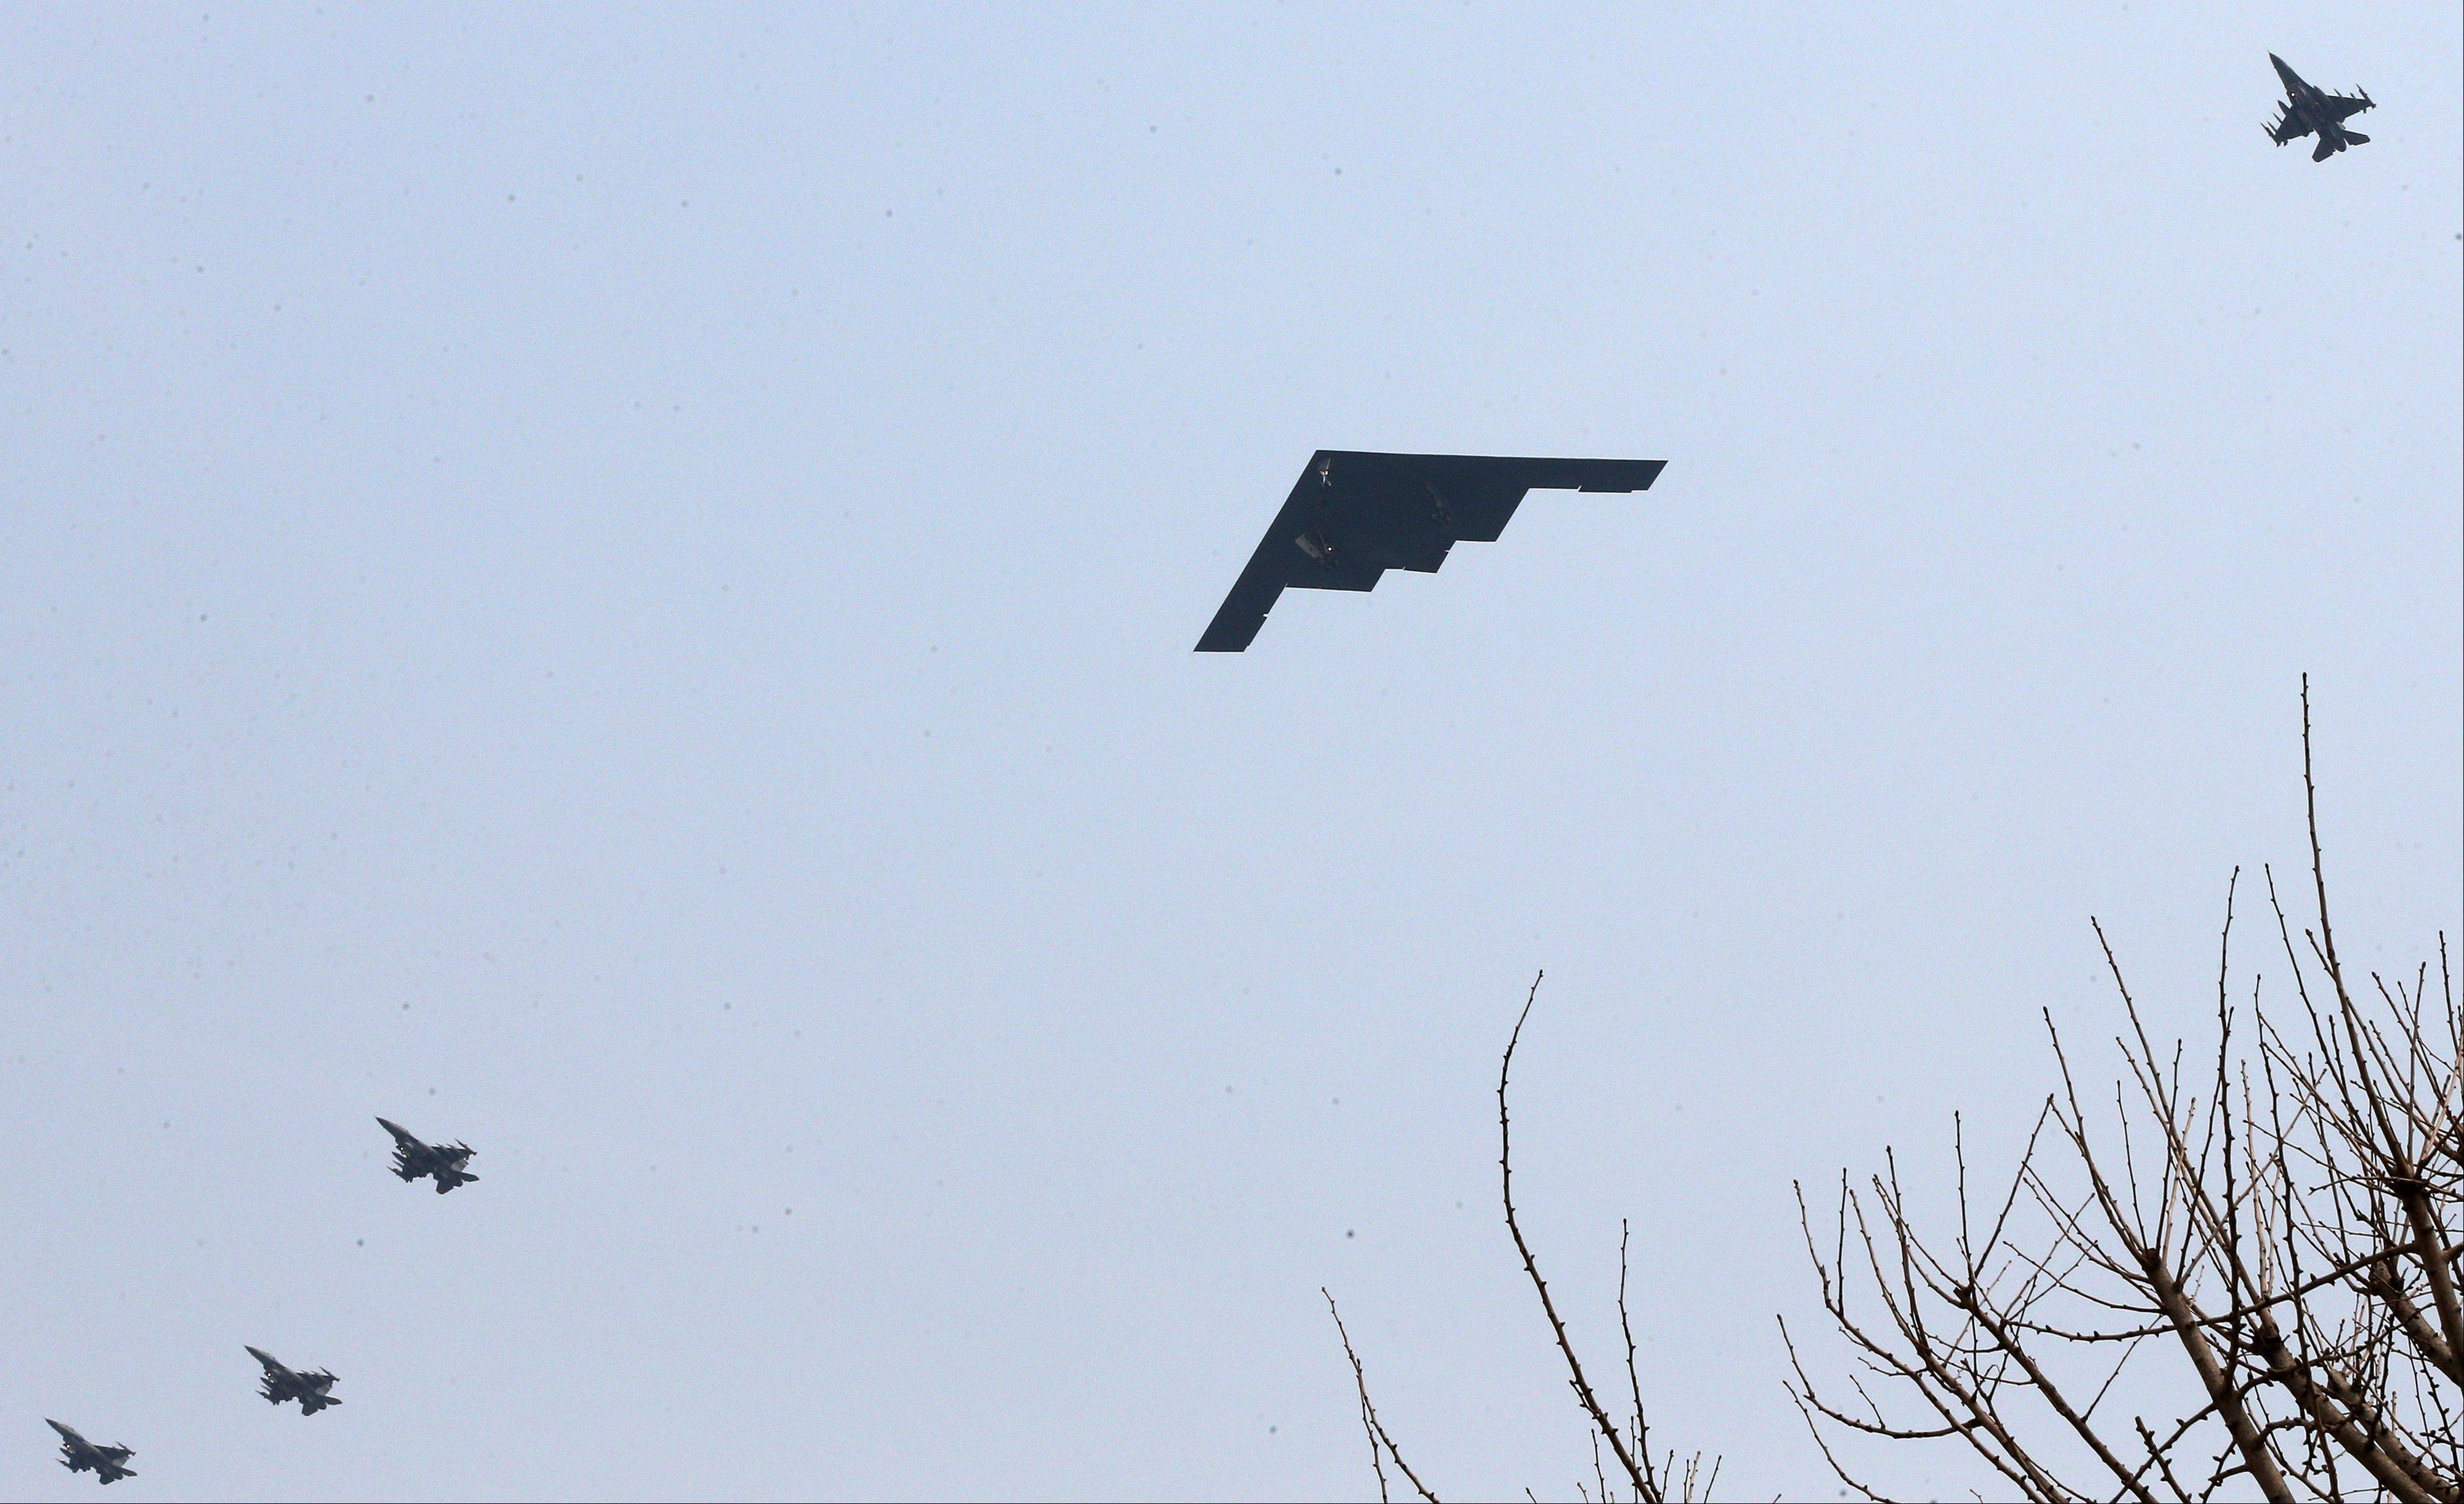 U.S. Air Force B-2 stealth bomber flies over near Osan U.S. Air Base in Pyeongtaek, south of Seoul, South Korea, Thursday.